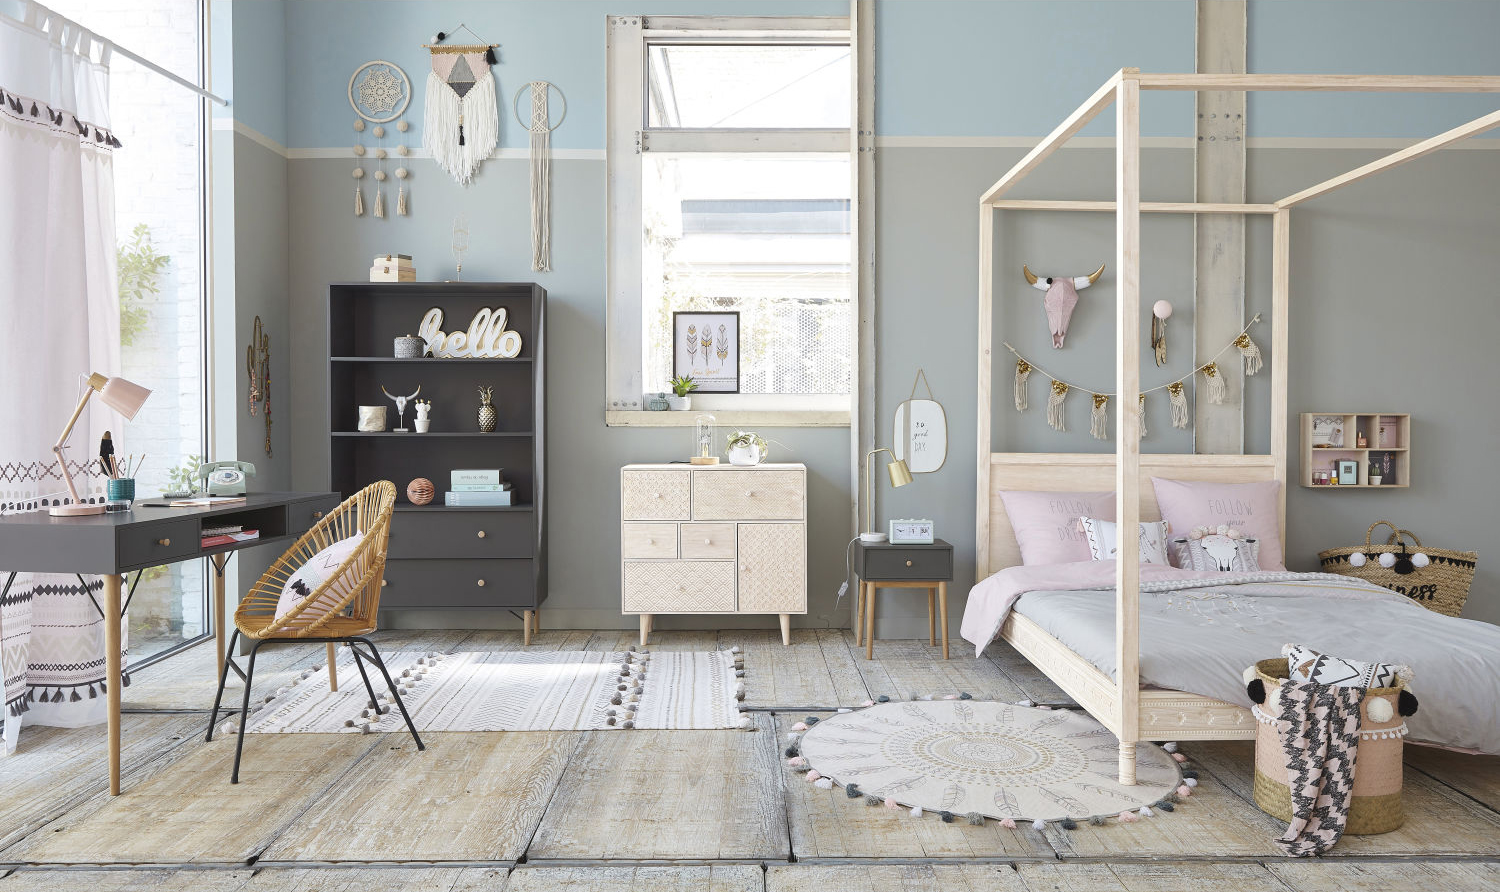 Kinderzimmer Interior Design Trends Für 2019 Https Lunamag De